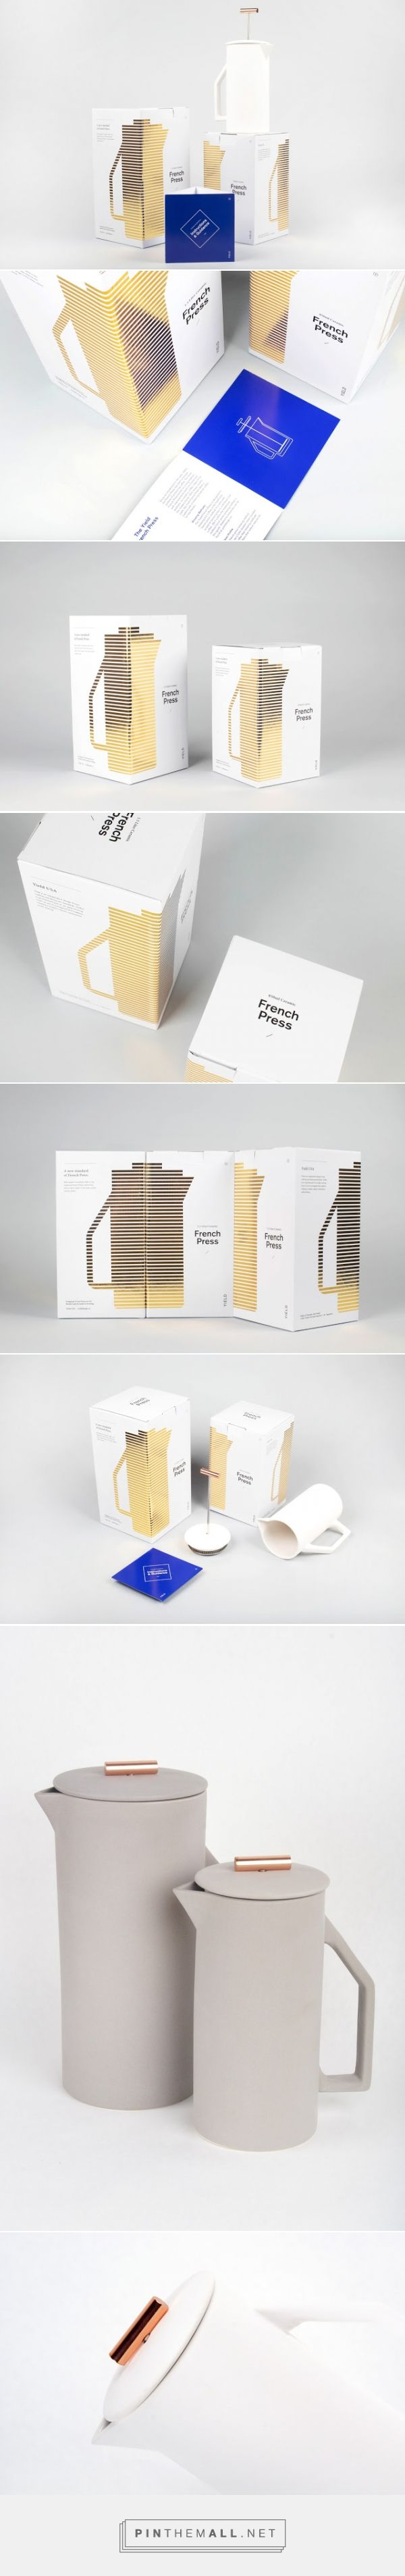 YIELD French Press Packaging of the World - Creative Package Design Gallery - http://www.packagingoftheworld.com/2016/01/yield-french-press.html